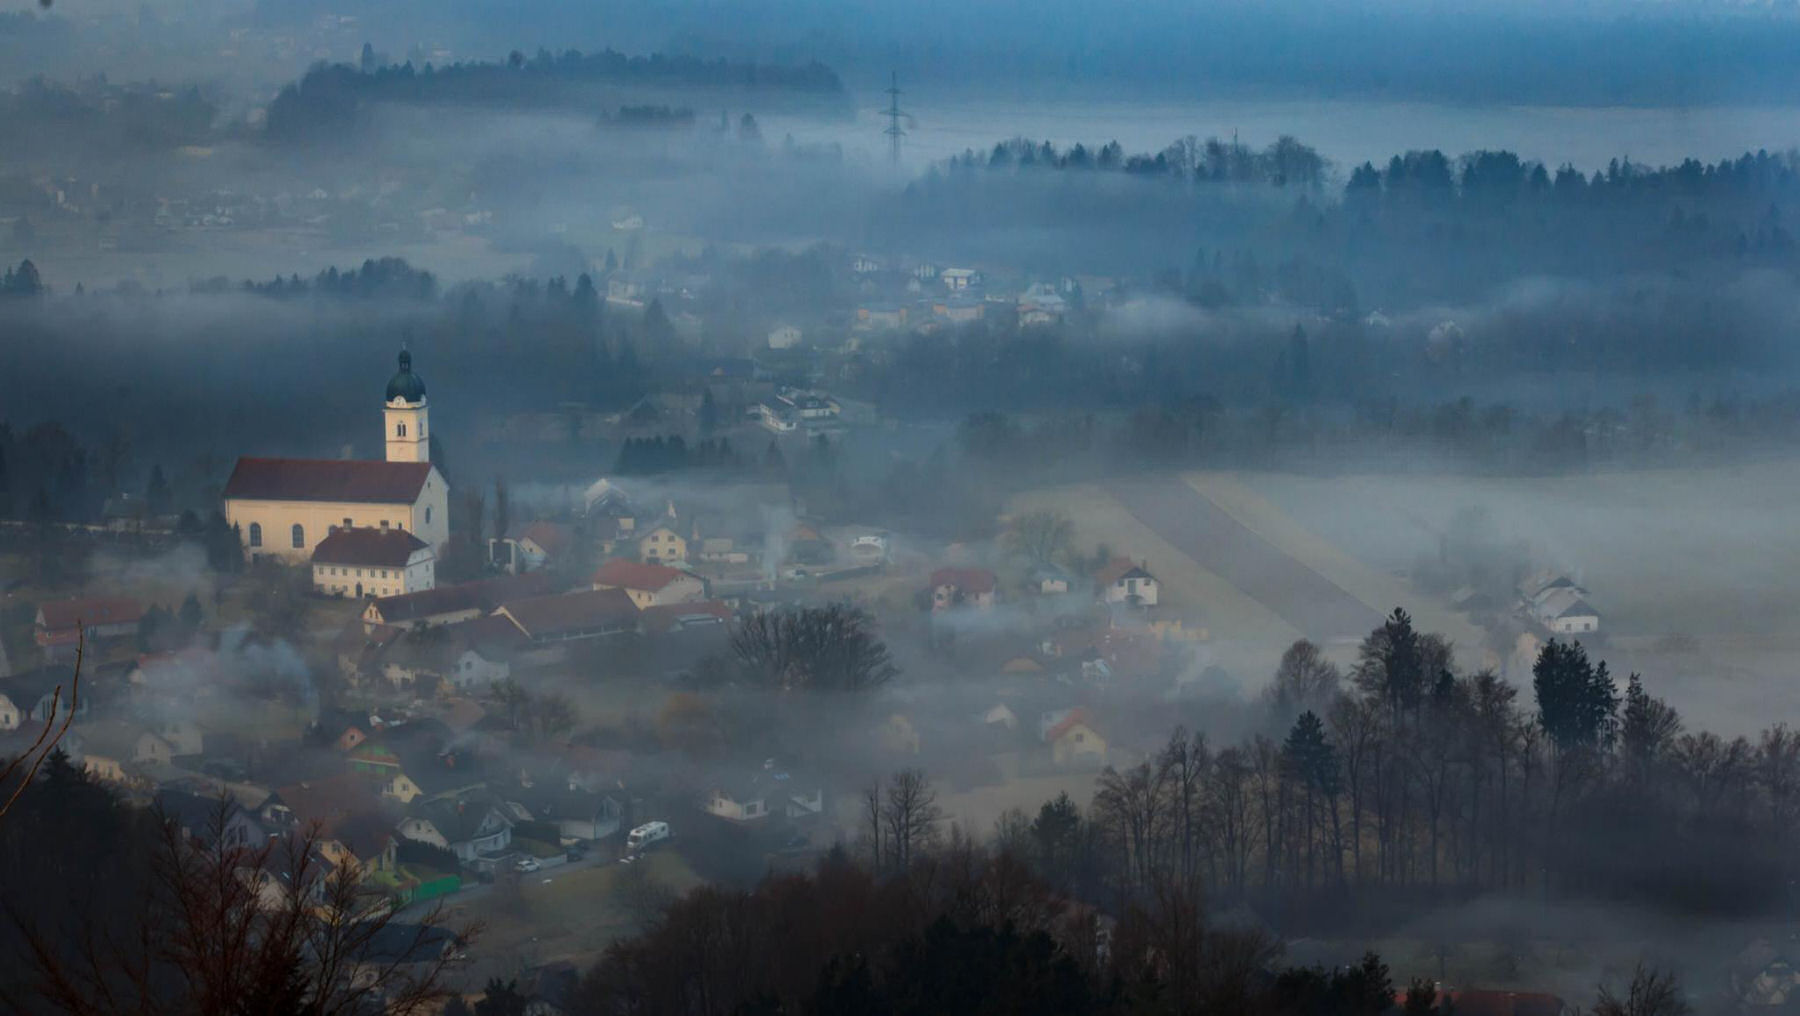 The village of Smlednik under the Smarna Gora hill, Slovenia